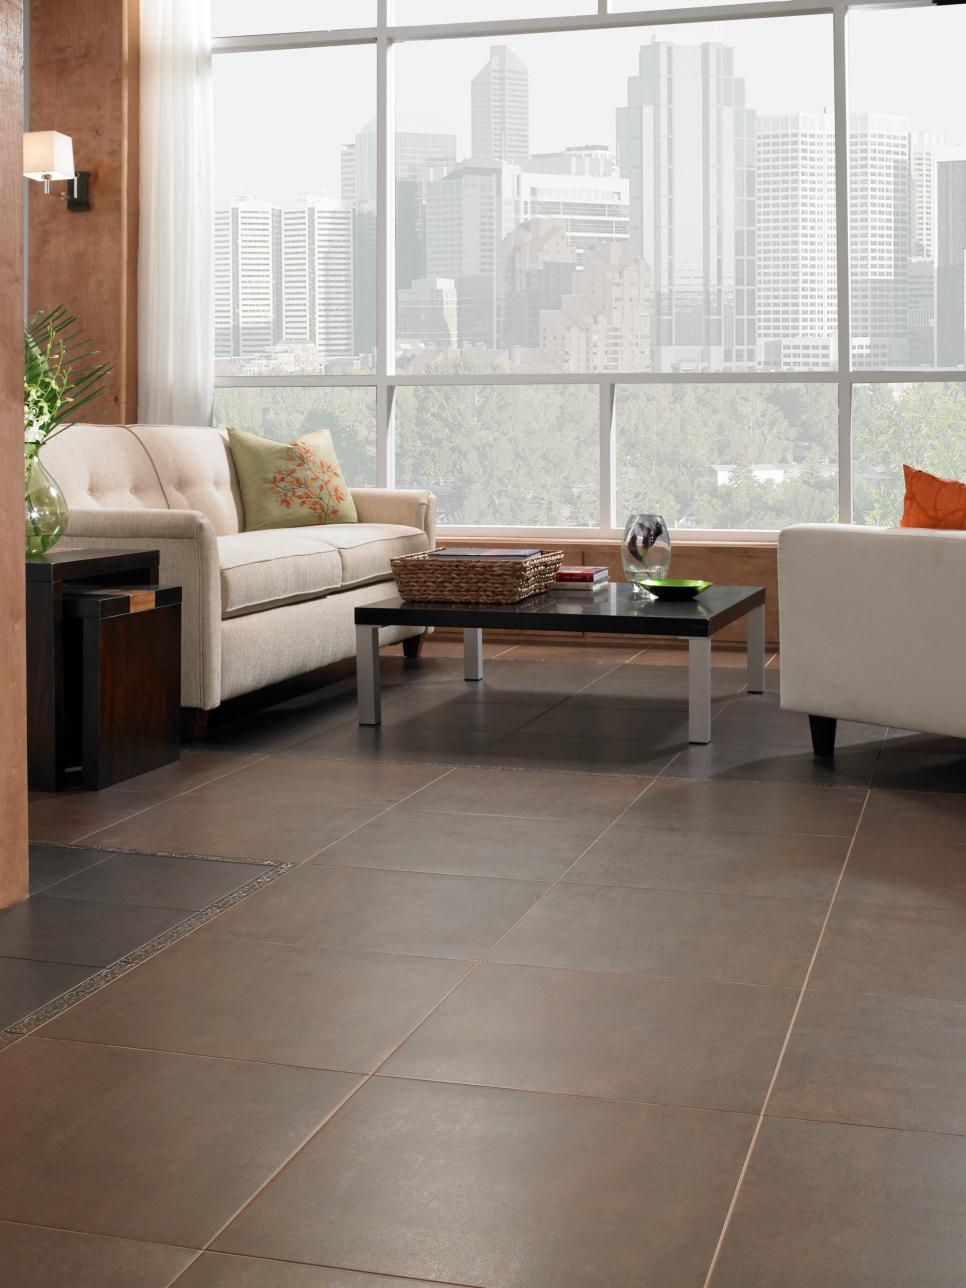 floor tile ideas living room. concrete floor tile ideas living room a